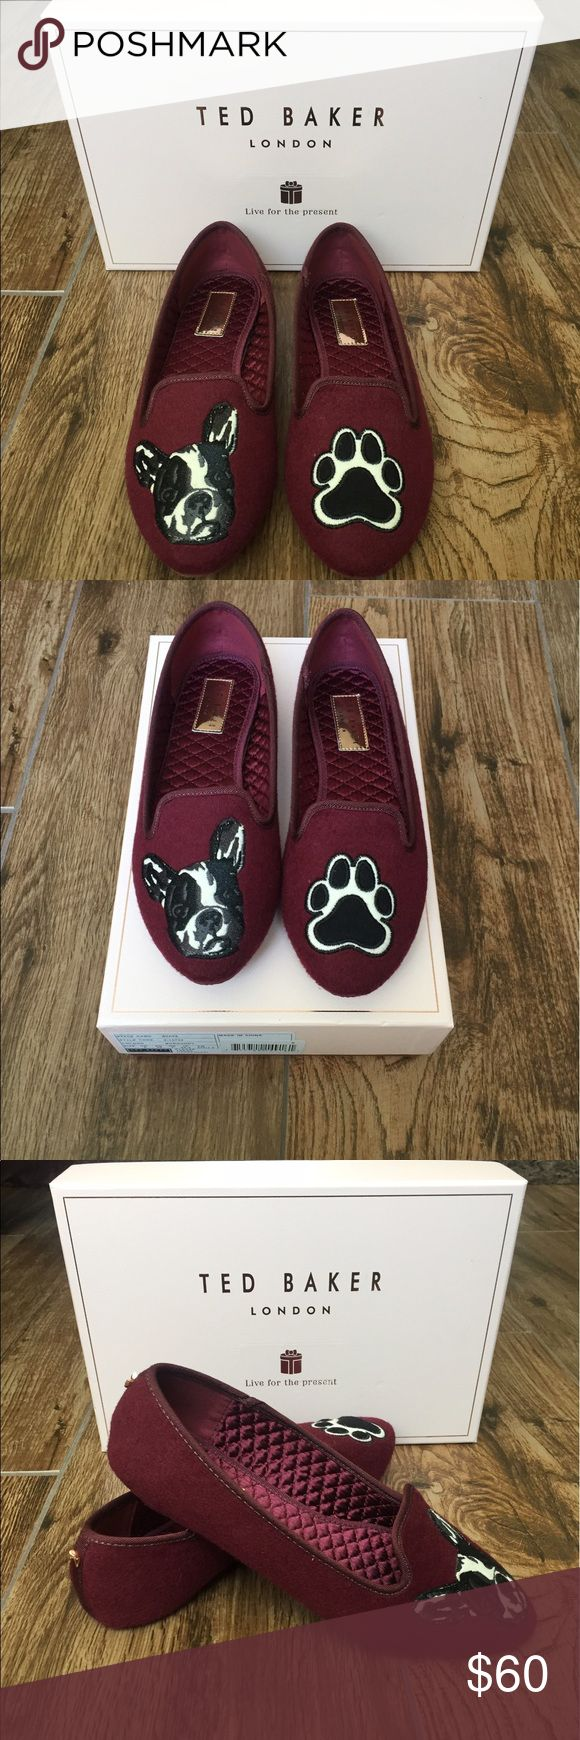 Ted Baker ayaya flats Ted Baker Ayaya - Women's Slippers : Burgundy Wool : Curl up and relax your paws in the sweet Ayaya slippers! Textile upper with embroidered details. Slip-on design. Round toe. Textile lining. Cushioned footbed. Textile sole. Ted Baker London Shoes Flats & Loafers